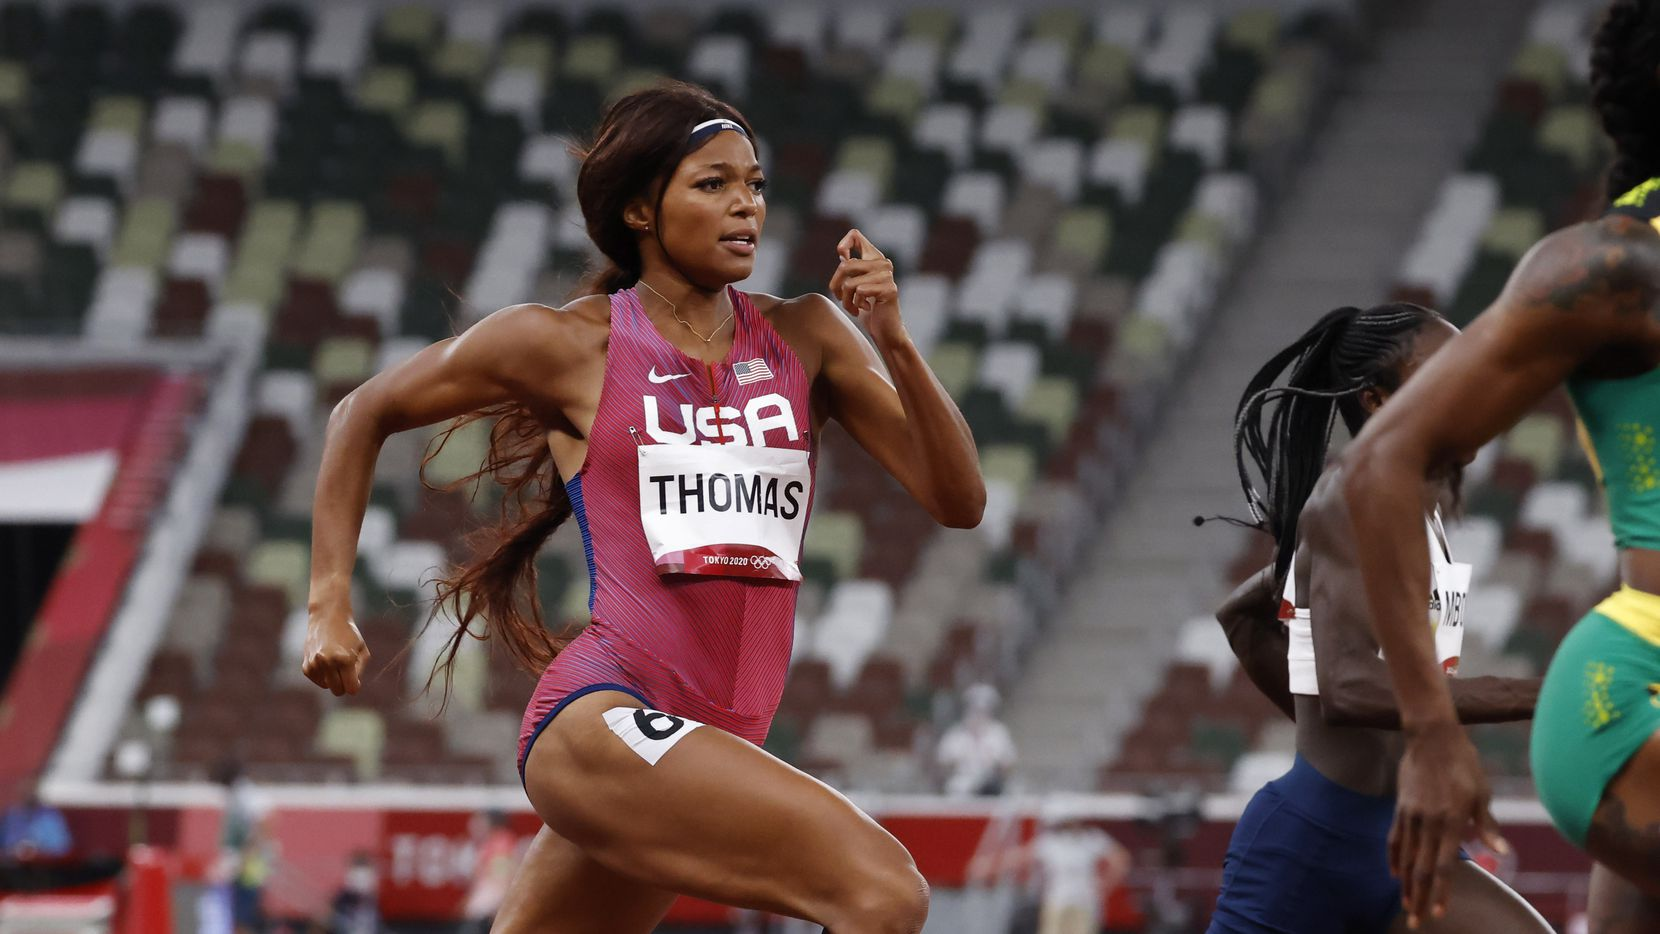 USA's Gabrielle Thomas competes in the women's 200 meter semifinal during the postponed 2020 Tokyo Olympics at Olympic Stadium, on Monday, August 2, 2021, in Tokyo, Japan. Thomas finished with a time of 22.01 seconds to advance to the final.